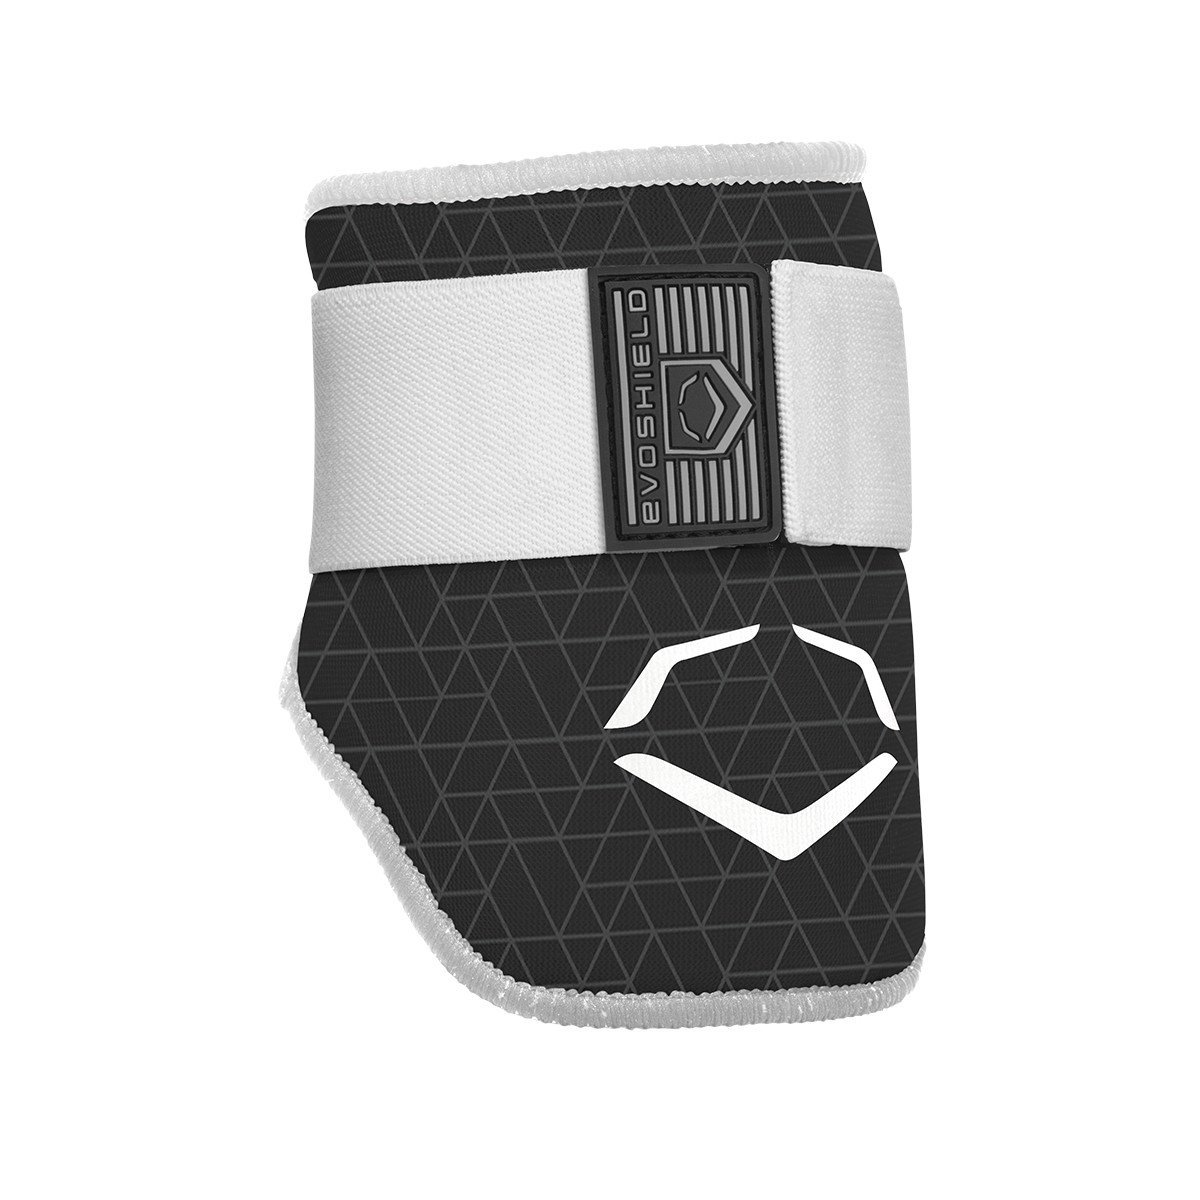 evoshield-evocharge-batters-elbow-guard-black-adult WTV6100BLADT  887768640484 Package contains 1 custom-molding protective elbow shield 1 elastic strap Gel-To-Shella